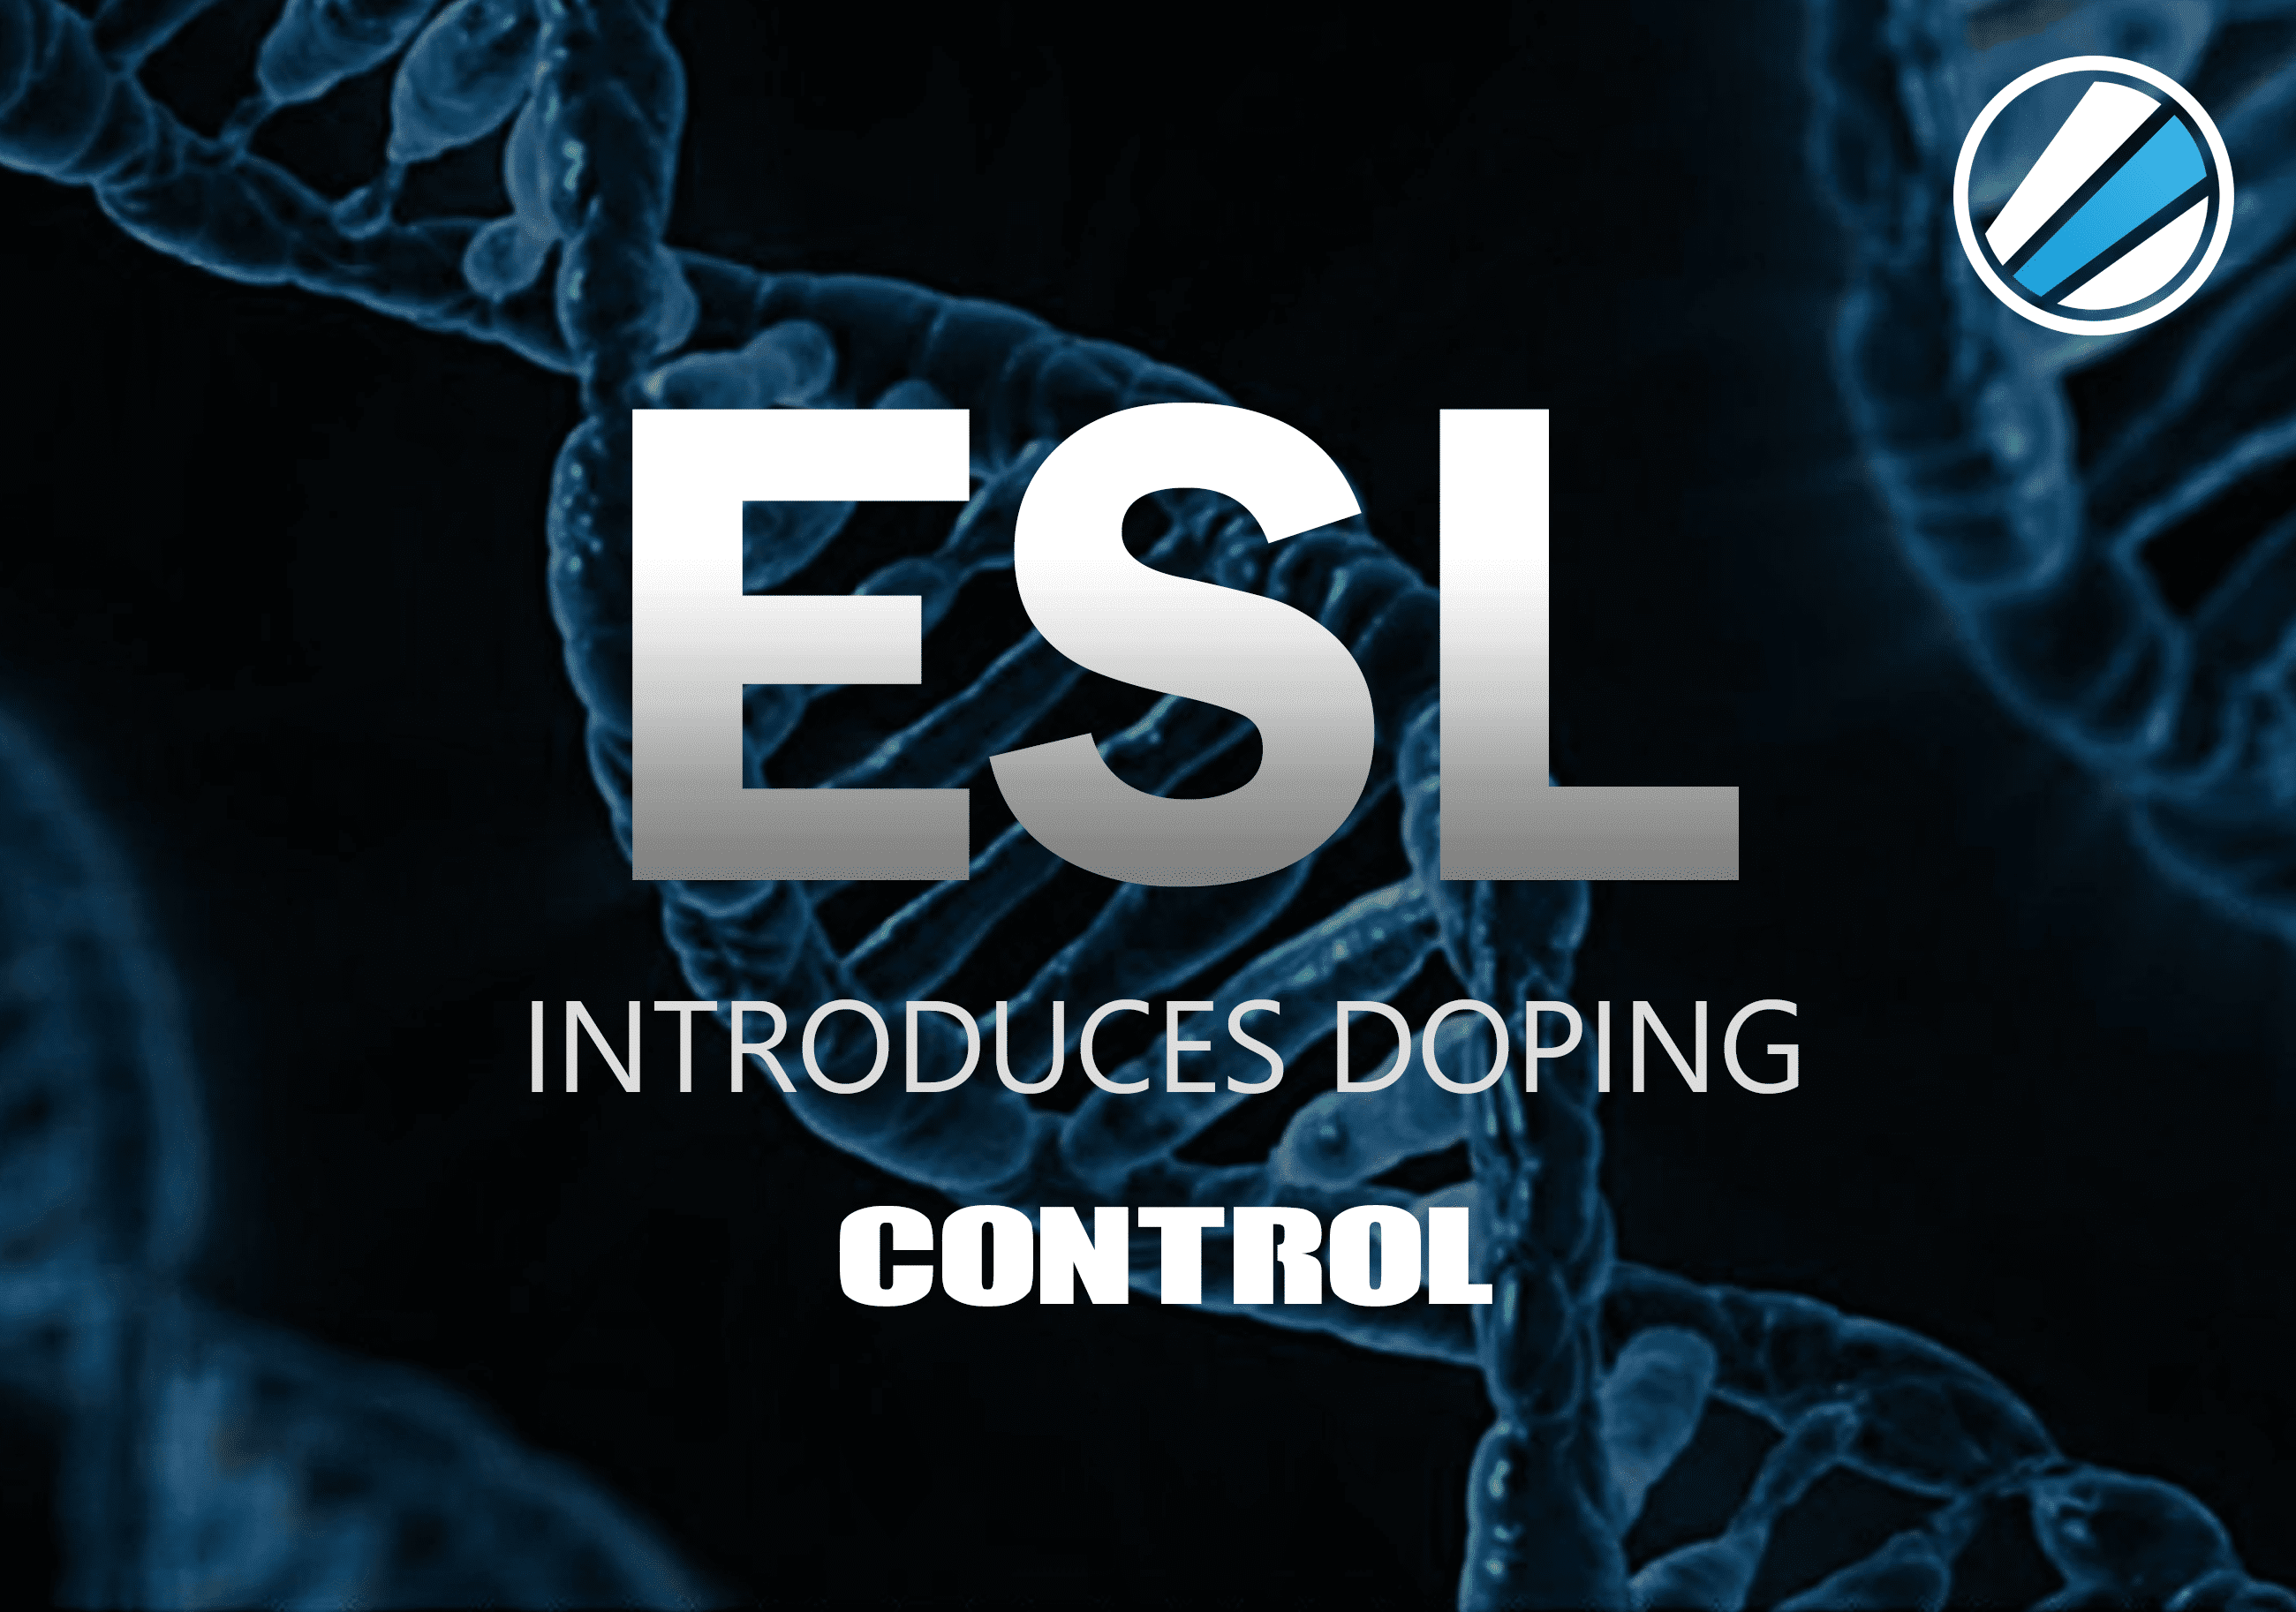 Background with DNA symbol with a blue tint. Foreground has the words 'ESL Introduces Doping Control' and an ESL logo in the top right corner